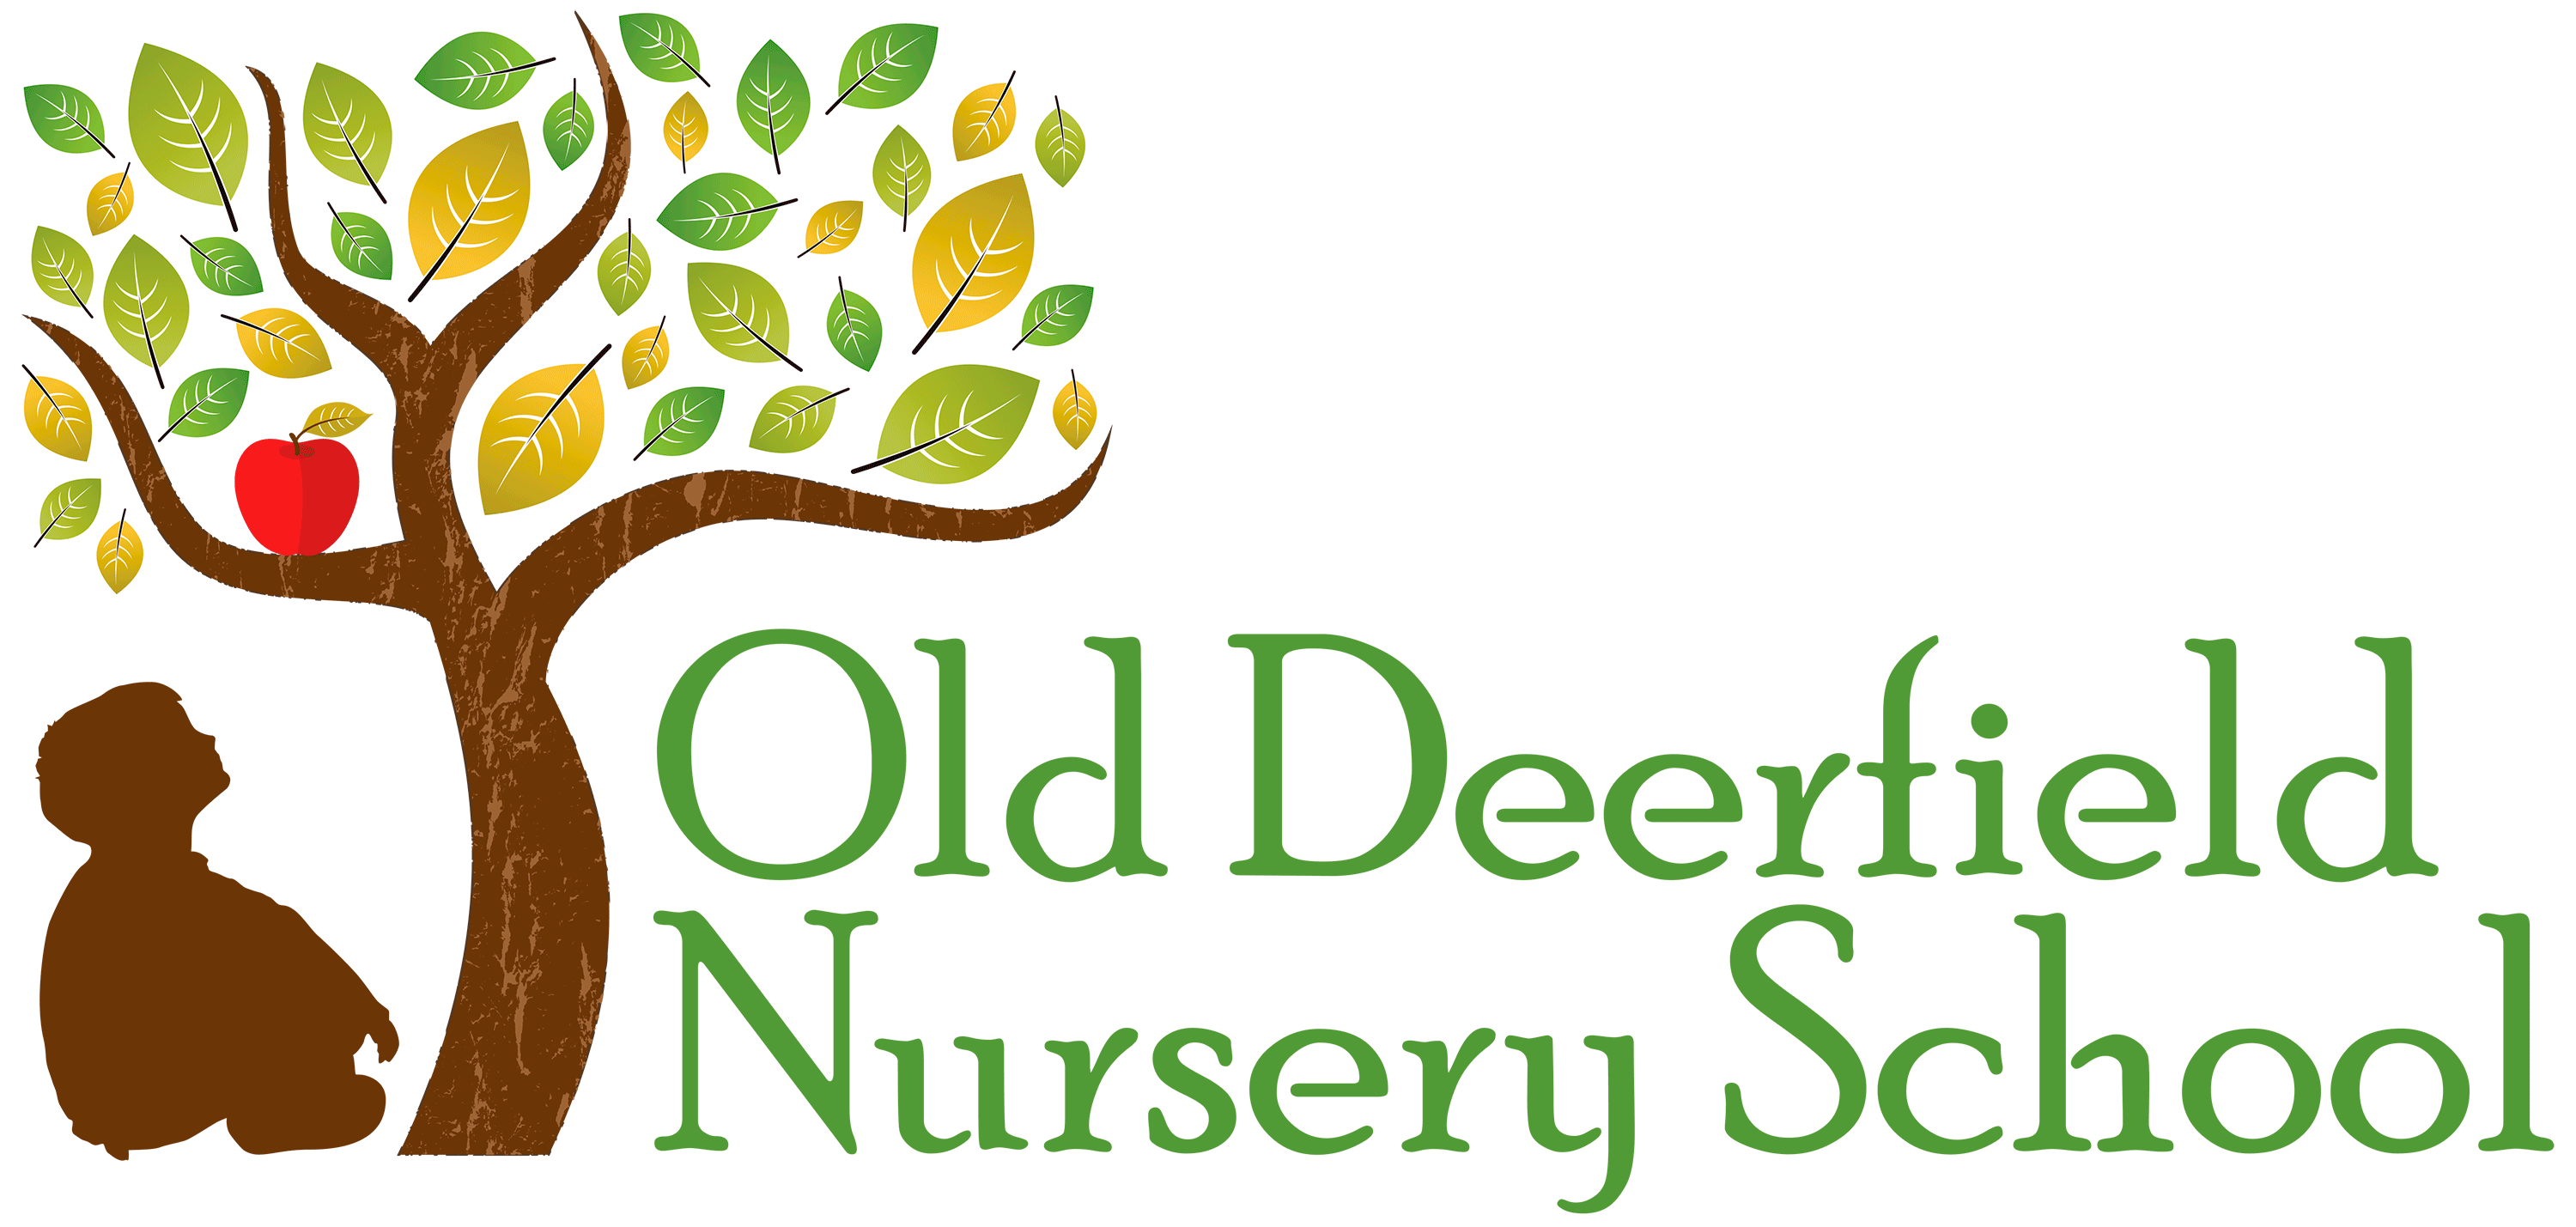 Old Deerfield Nursery School